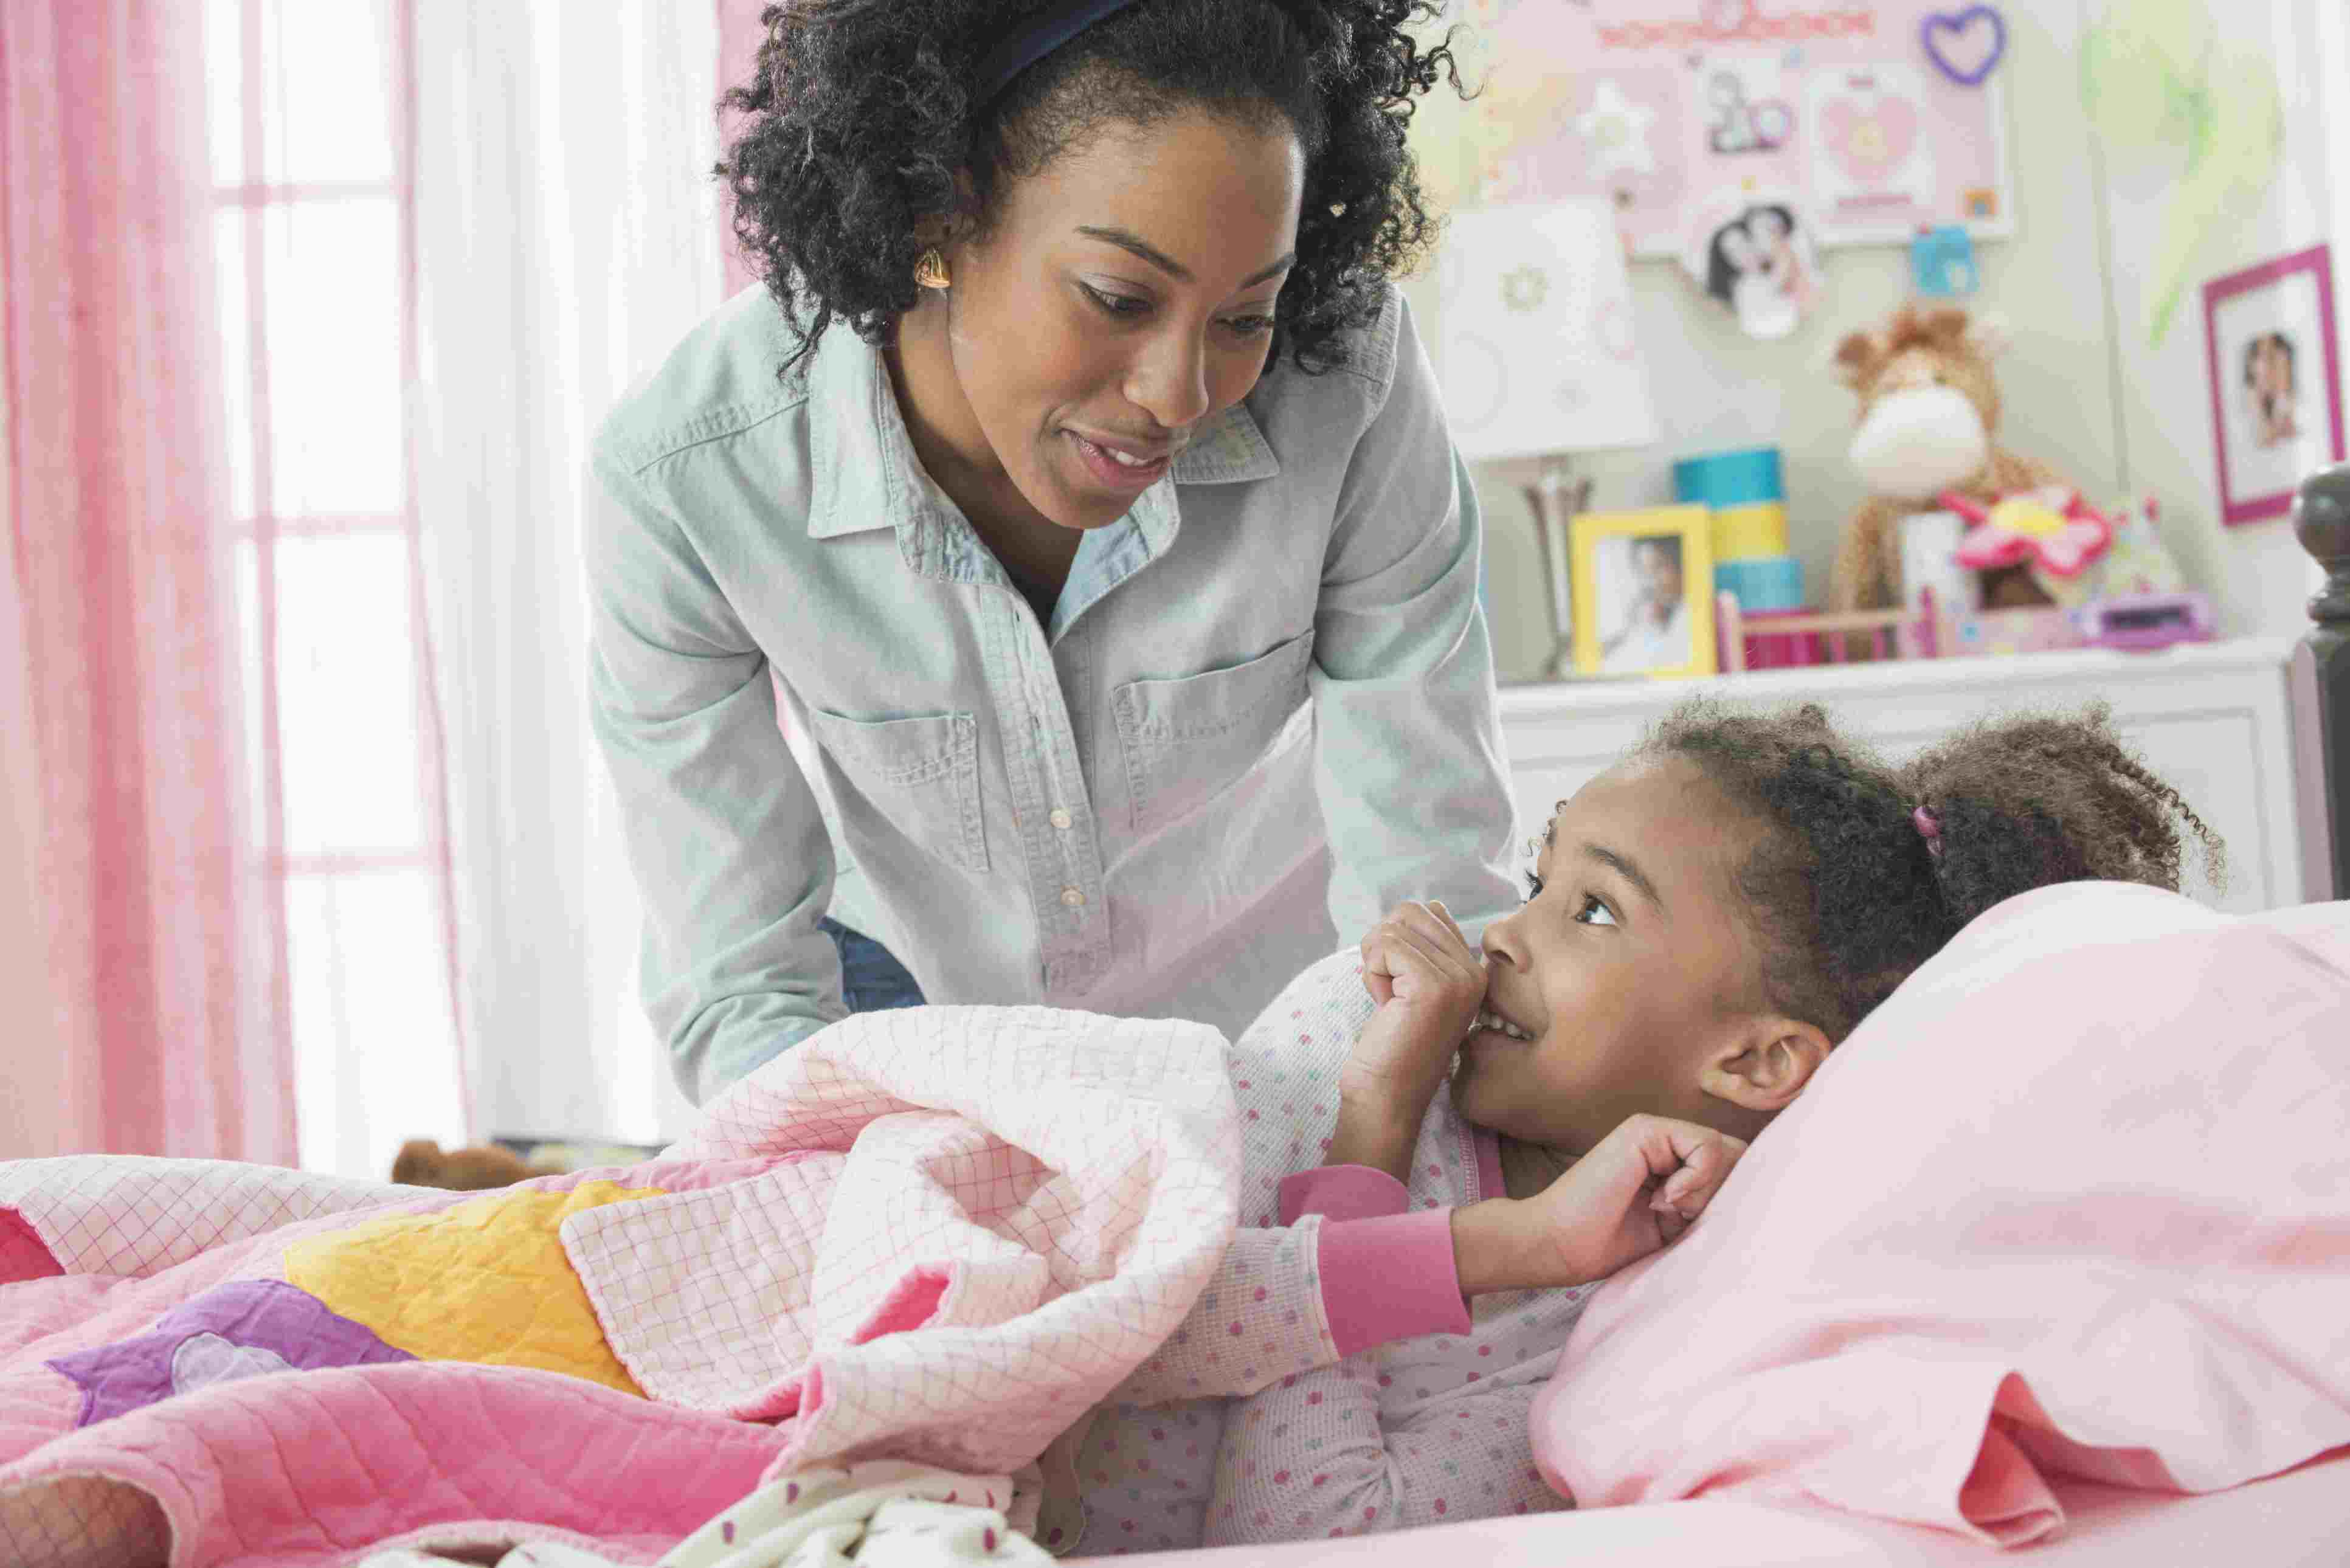 Kids' sleep problems - mother tucking daughter into bed